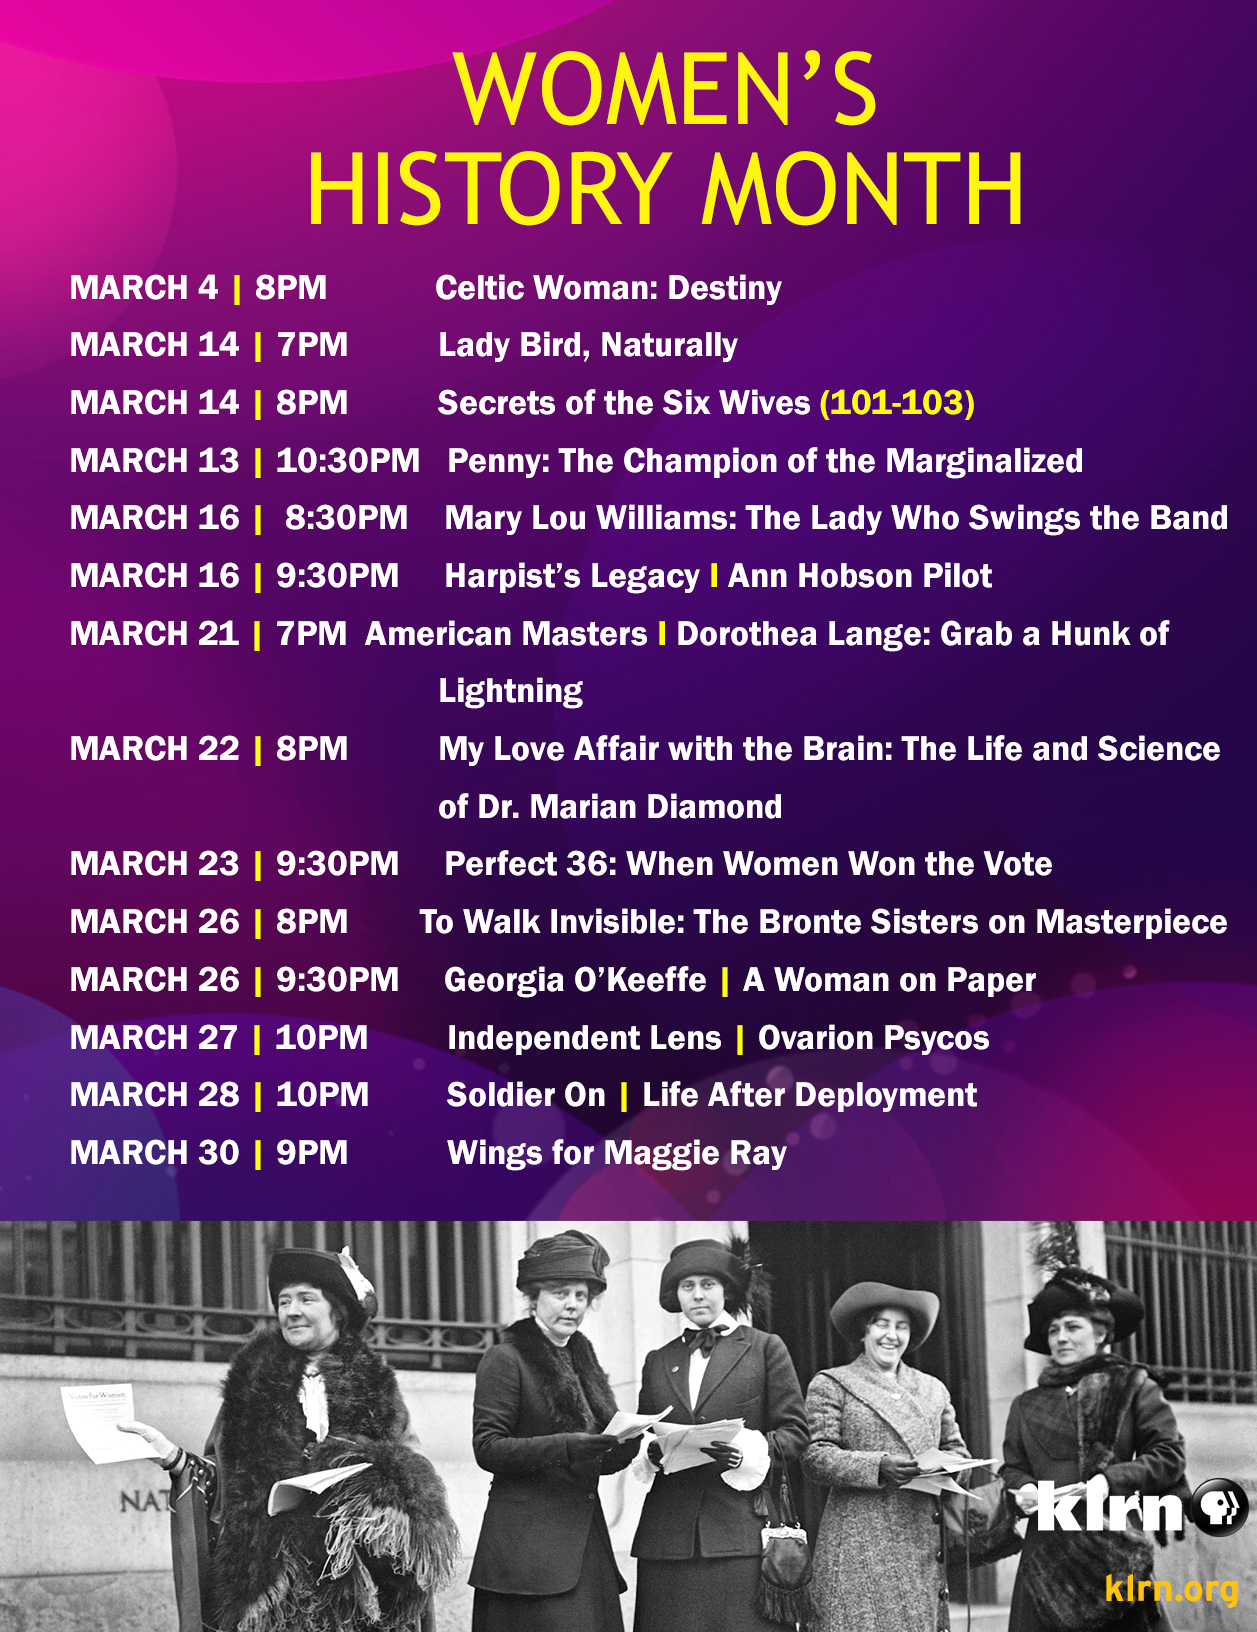 WomensHistoryMonth_2017_One Pager.jpg